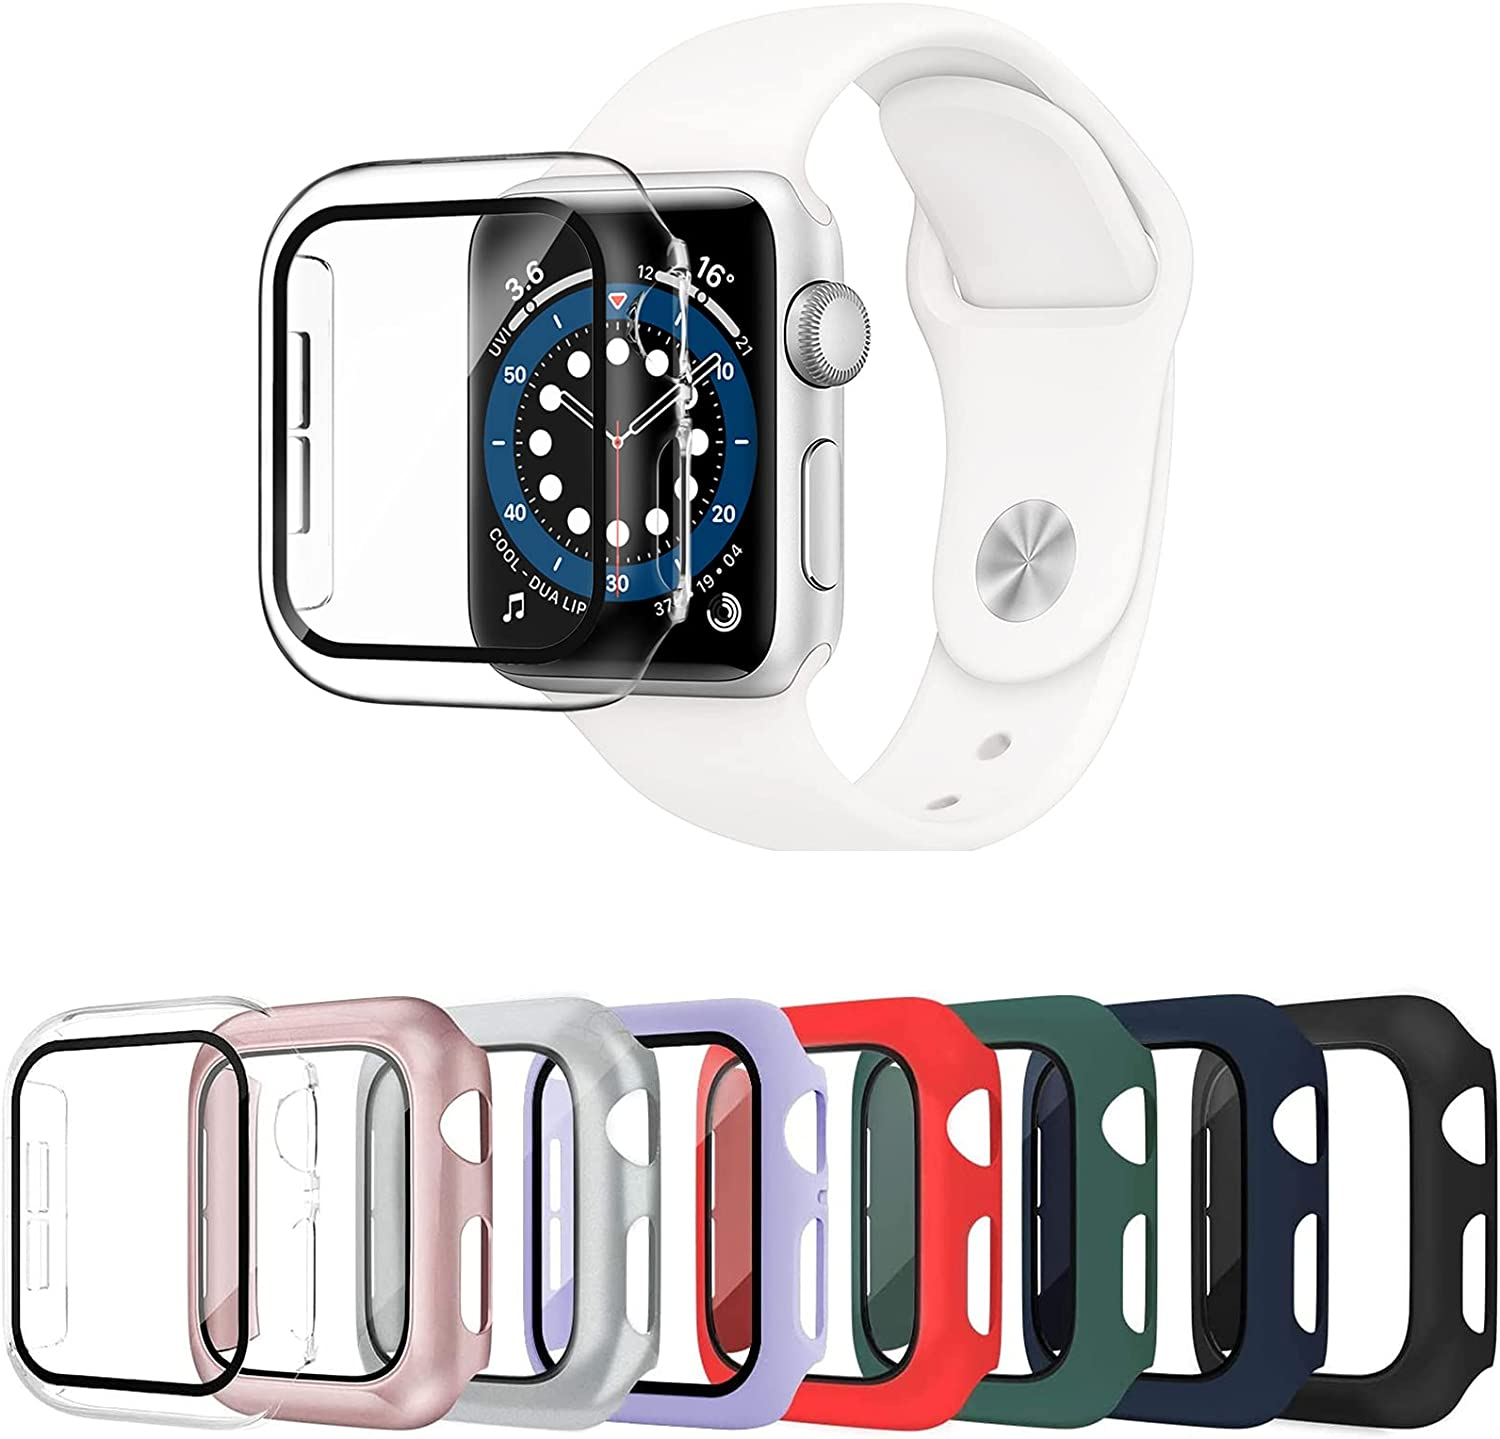 Surundo 8 Pack Apple Watch Case 38mm Compatible with iWatch Series 3/2/1, Built-in Tempered Glass Screen Protector Full Protective Cover Bumper for Apple Watch Accessories (only for 38mm)